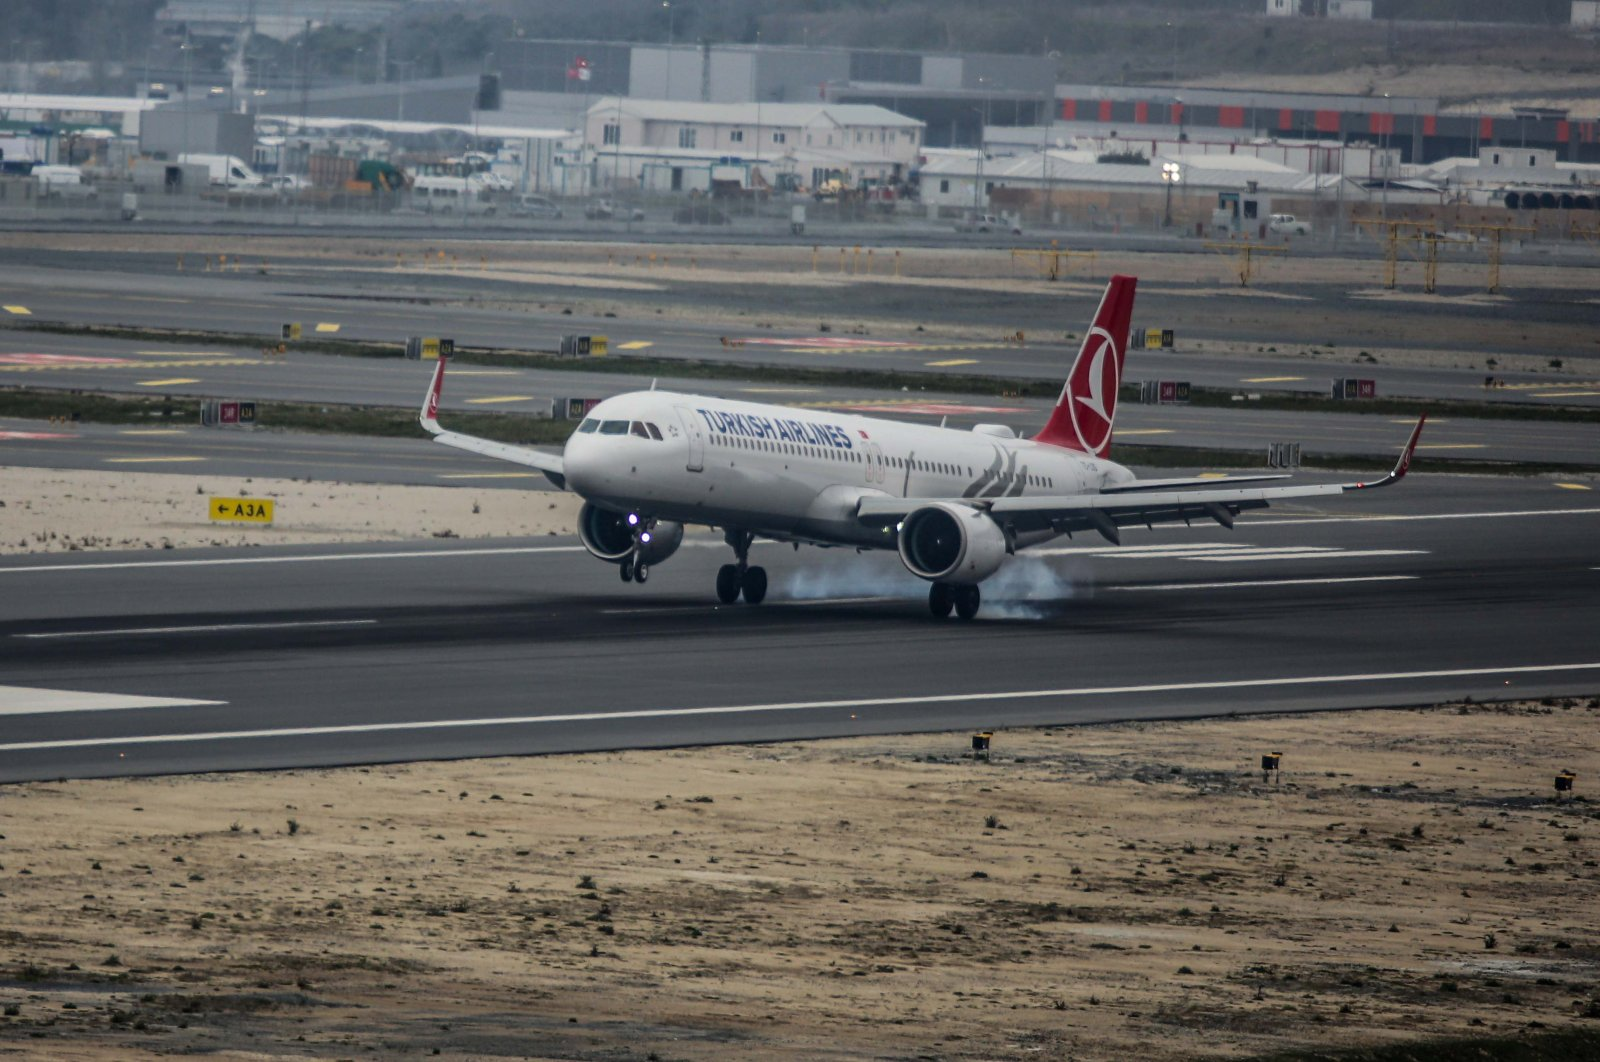 A Turkish Airlines aircraft lands at Istanbul Airport, April 6, 2019.